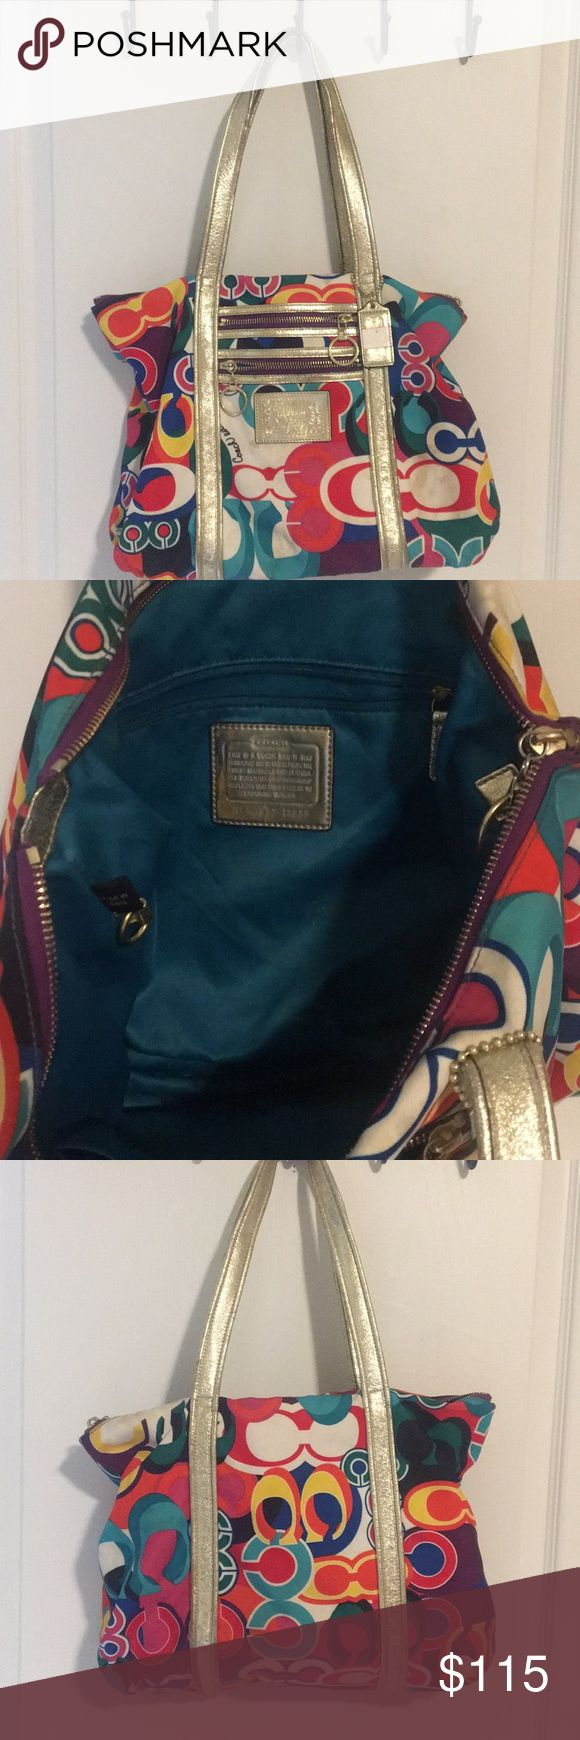 Coach poppy purse Coach poppy bag. Gold and very colorful. It's used so I will get it professionally cleaned when purchased. I will include the cleaning receipt in packaging. Will be like a brand new purse! Coach Bags Shoulder Bags